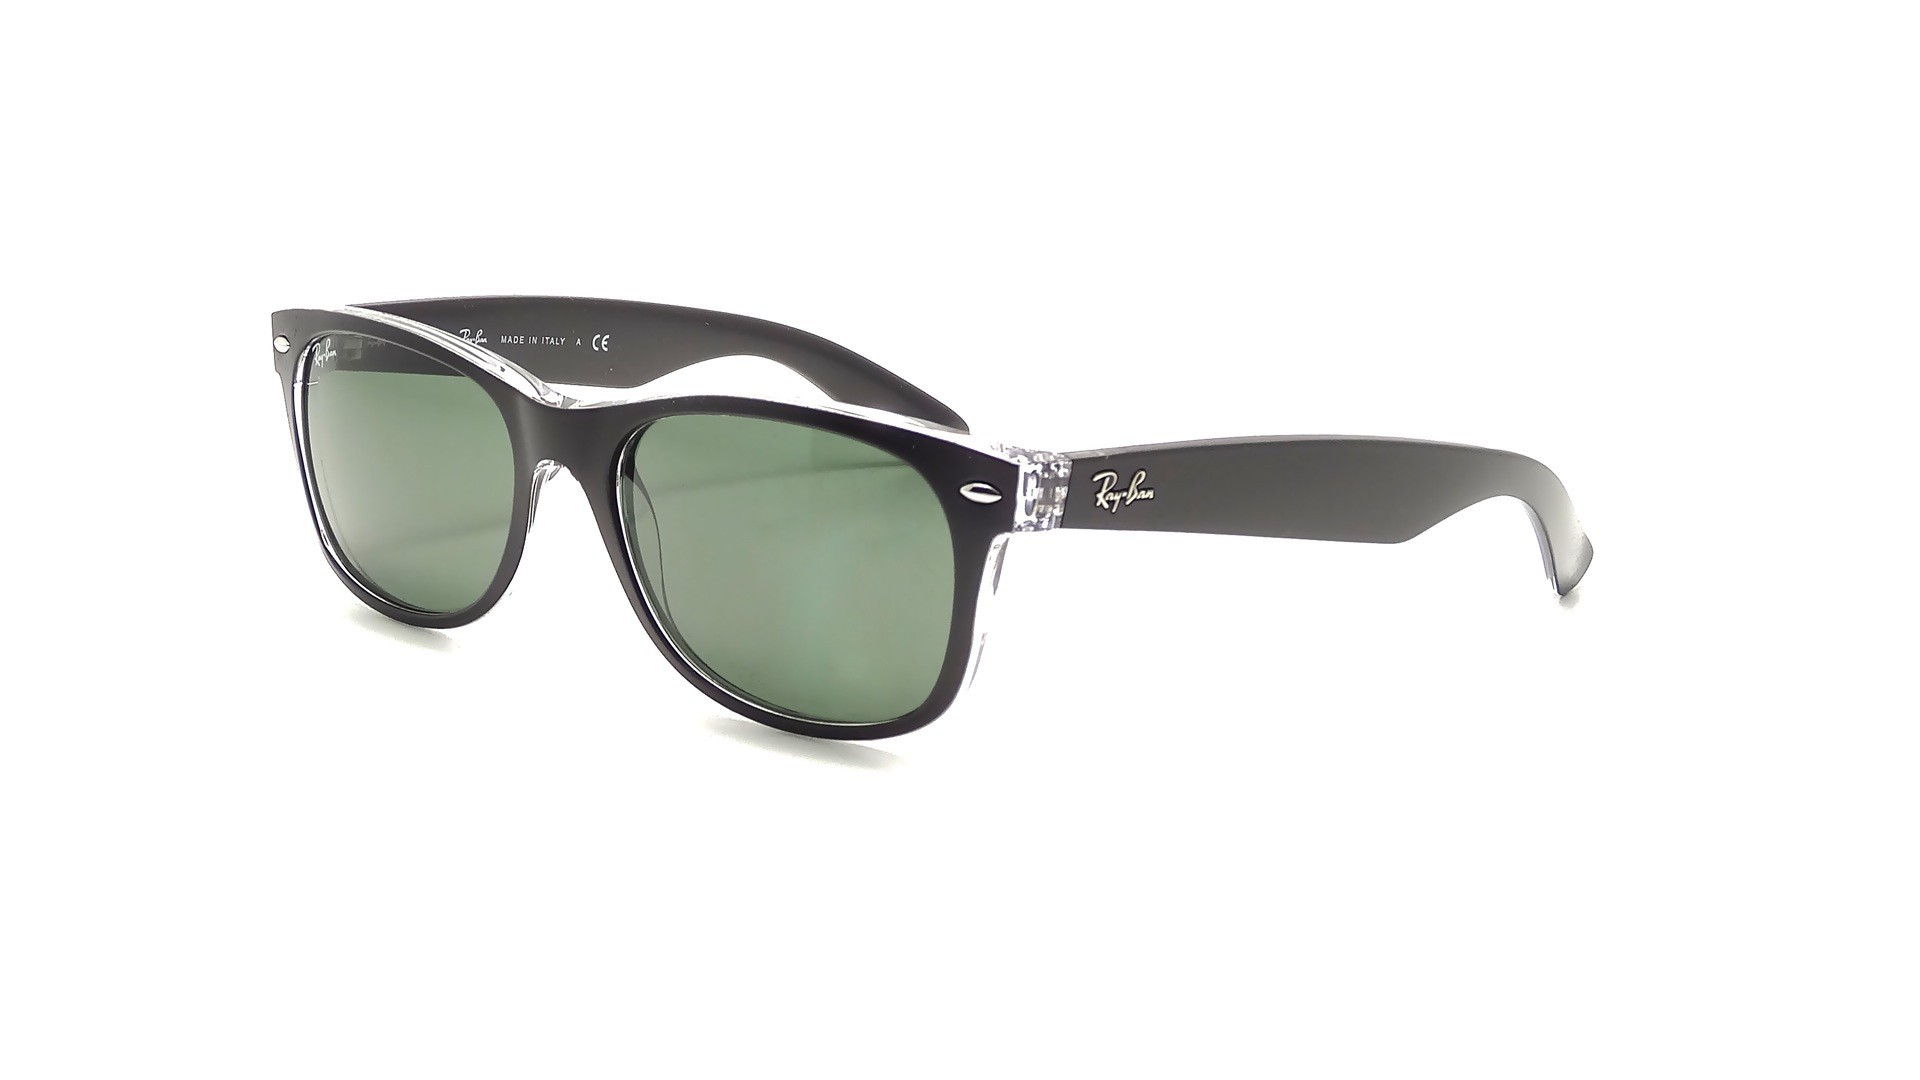 ray ban 2132 new wayfarer  Ban New Wayfarer Black RB2132 6052/58 52-18 Polarized